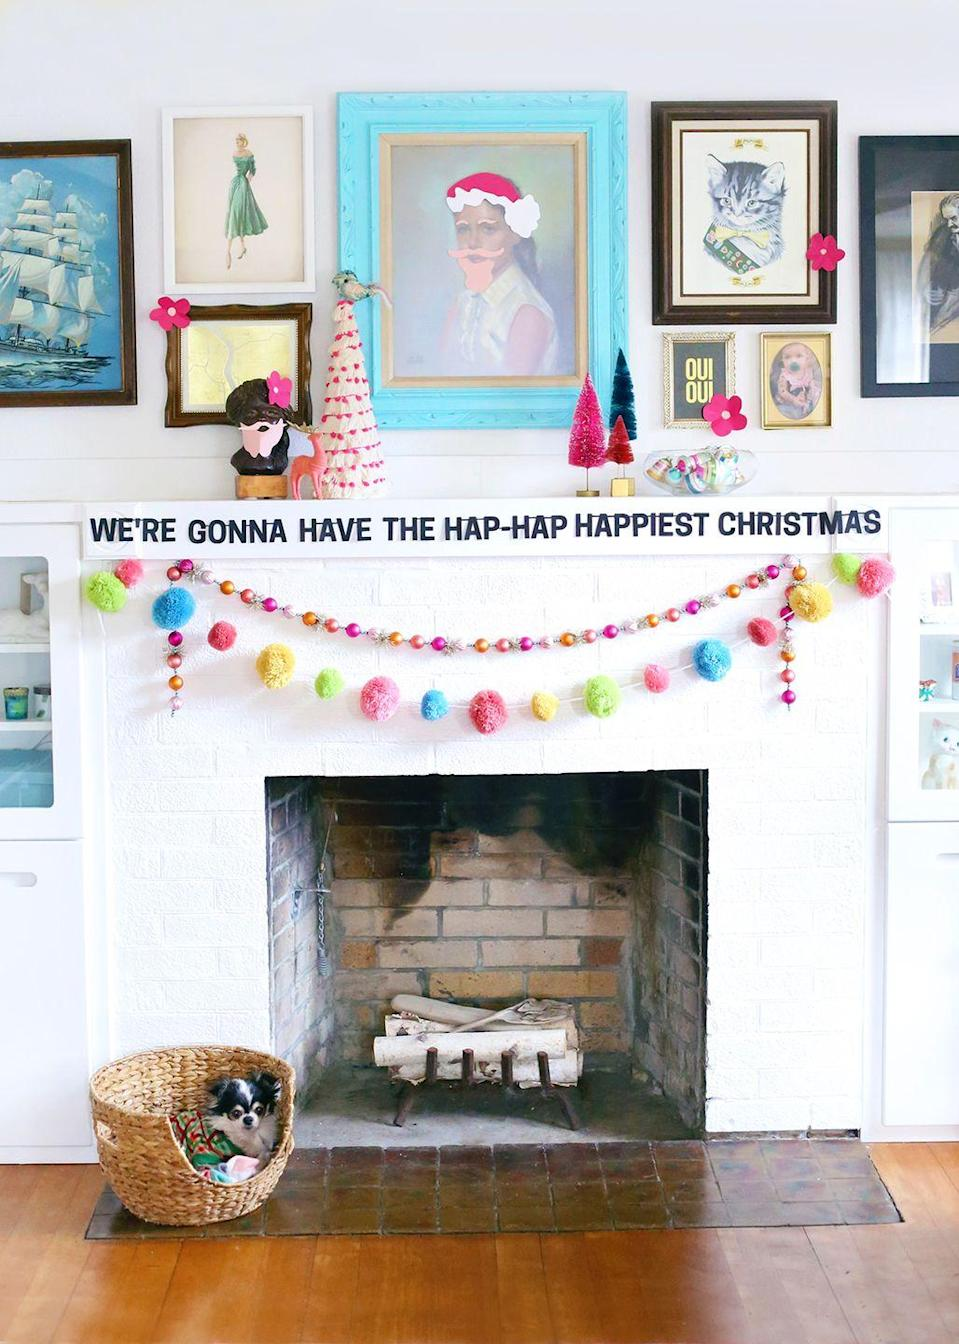 "<p>If you love the look of more cheeky decor, pair a few strands of colorful beaded garland with an upbeat printable banner. </p><p><em>Get the tutorial at <a href=""https://thepapermama.com/2017/11/hap-hap-happiest-christmas-banner/"" rel=""nofollow noopener"" target=""_blank"" data-ylk=""slk:The Paper Mama"" class=""link rapid-noclick-resp"">The Paper Mama</a>. </em></p><p><a class=""link rapid-noclick-resp"" href=""https://www.amazon.com/Mkono-Christmas-Garland-Decorative-Decorations/dp/B07S7T132G?tag=syn-yahoo-20&ascsubtag=%5Bartid%7C10072.g.34484299%5Bsrc%7Cyahoo-us"" rel=""nofollow noopener"" target=""_blank"" data-ylk=""slk:SHOP GARLAND"">SHOP GARLAND</a></p>"